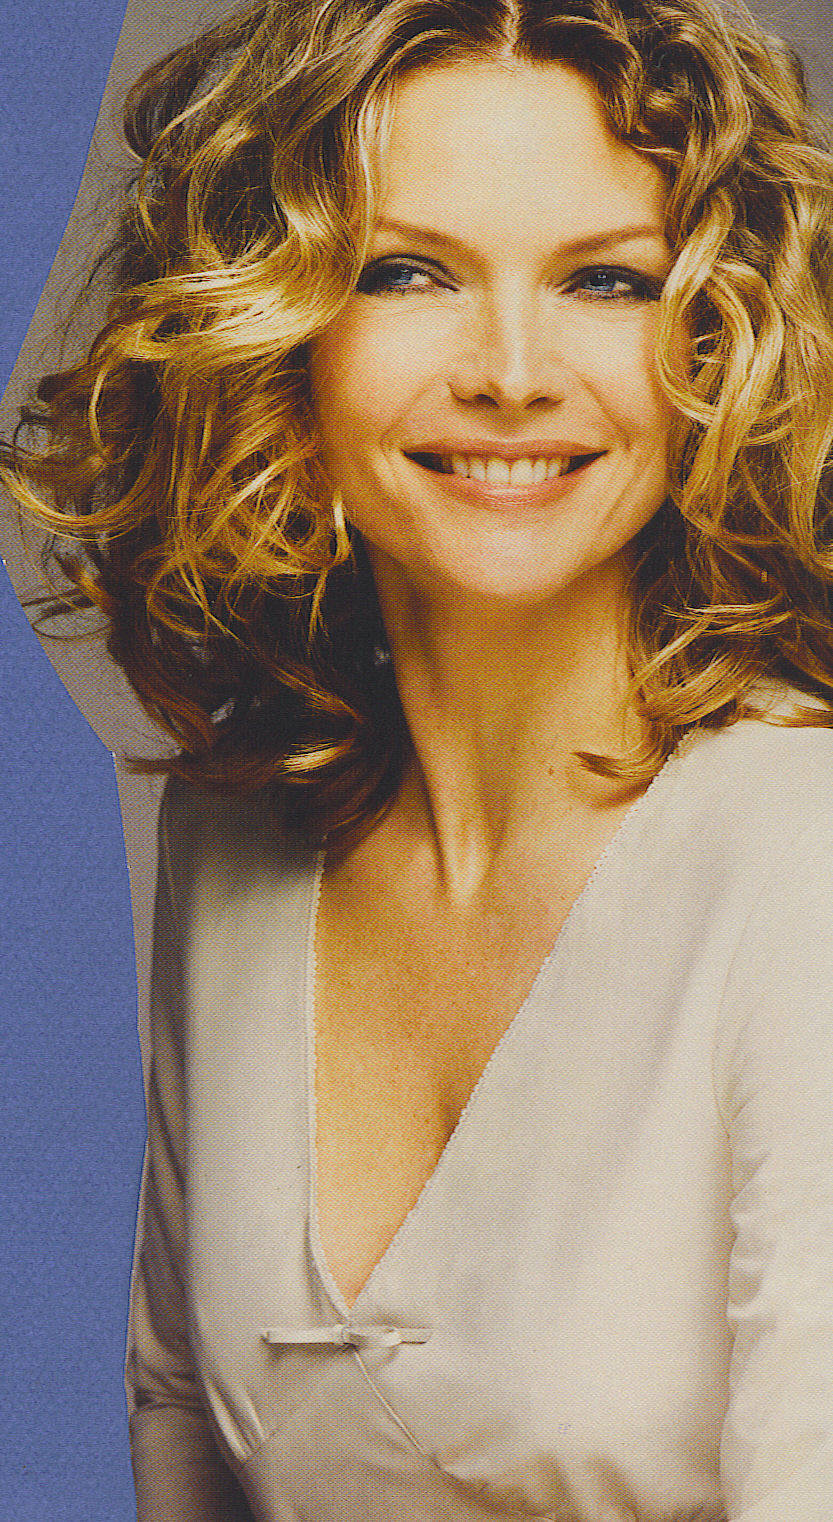 Michelle Pfeiffer - Picture Actress